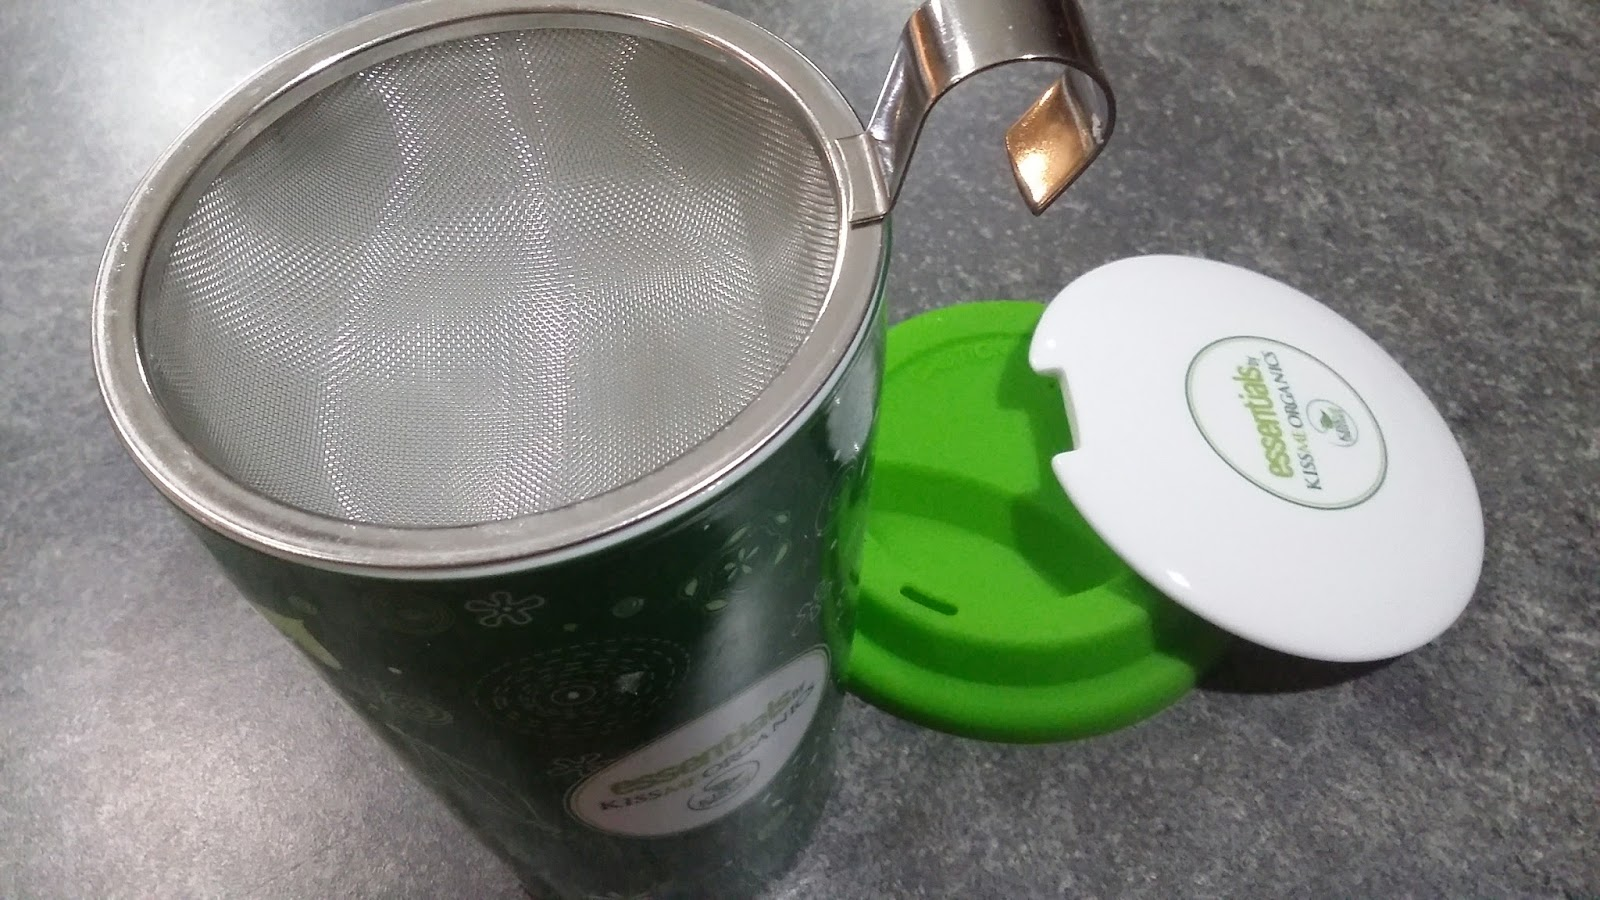 Tea Strainer Where You Can Drink While Steeping